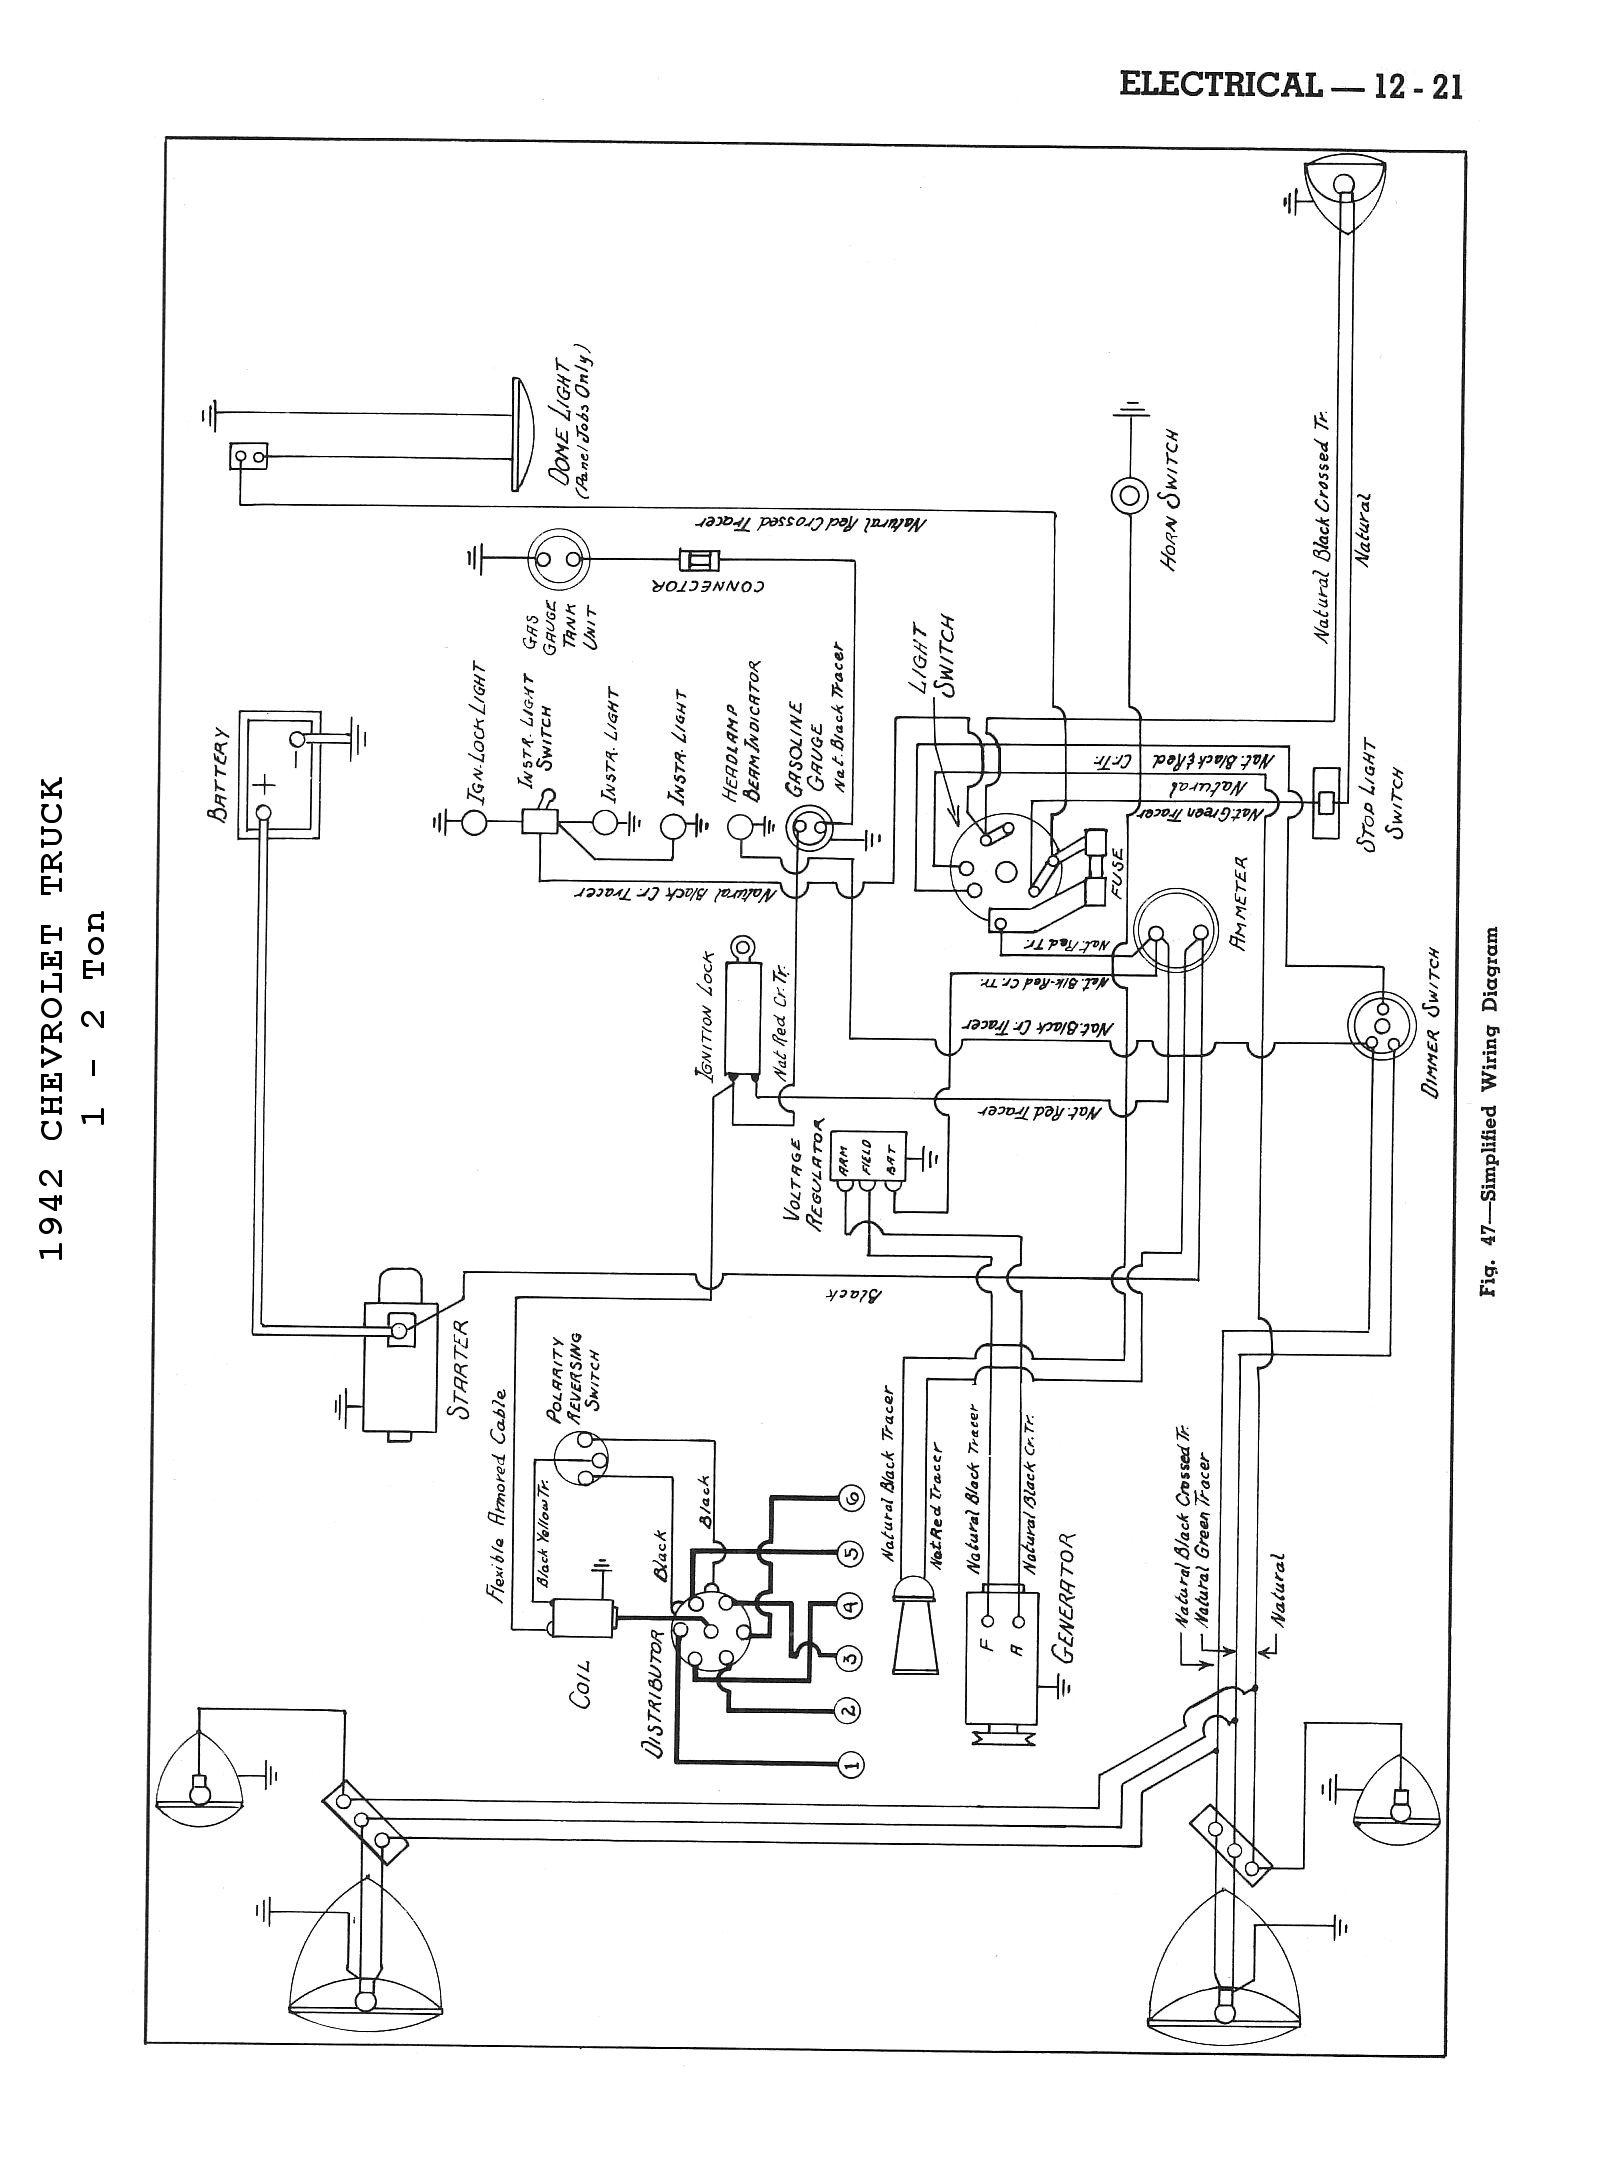 hight resolution of 1941 jeep wiring diagram another wiring diagram 1941 jeep wiring diagram